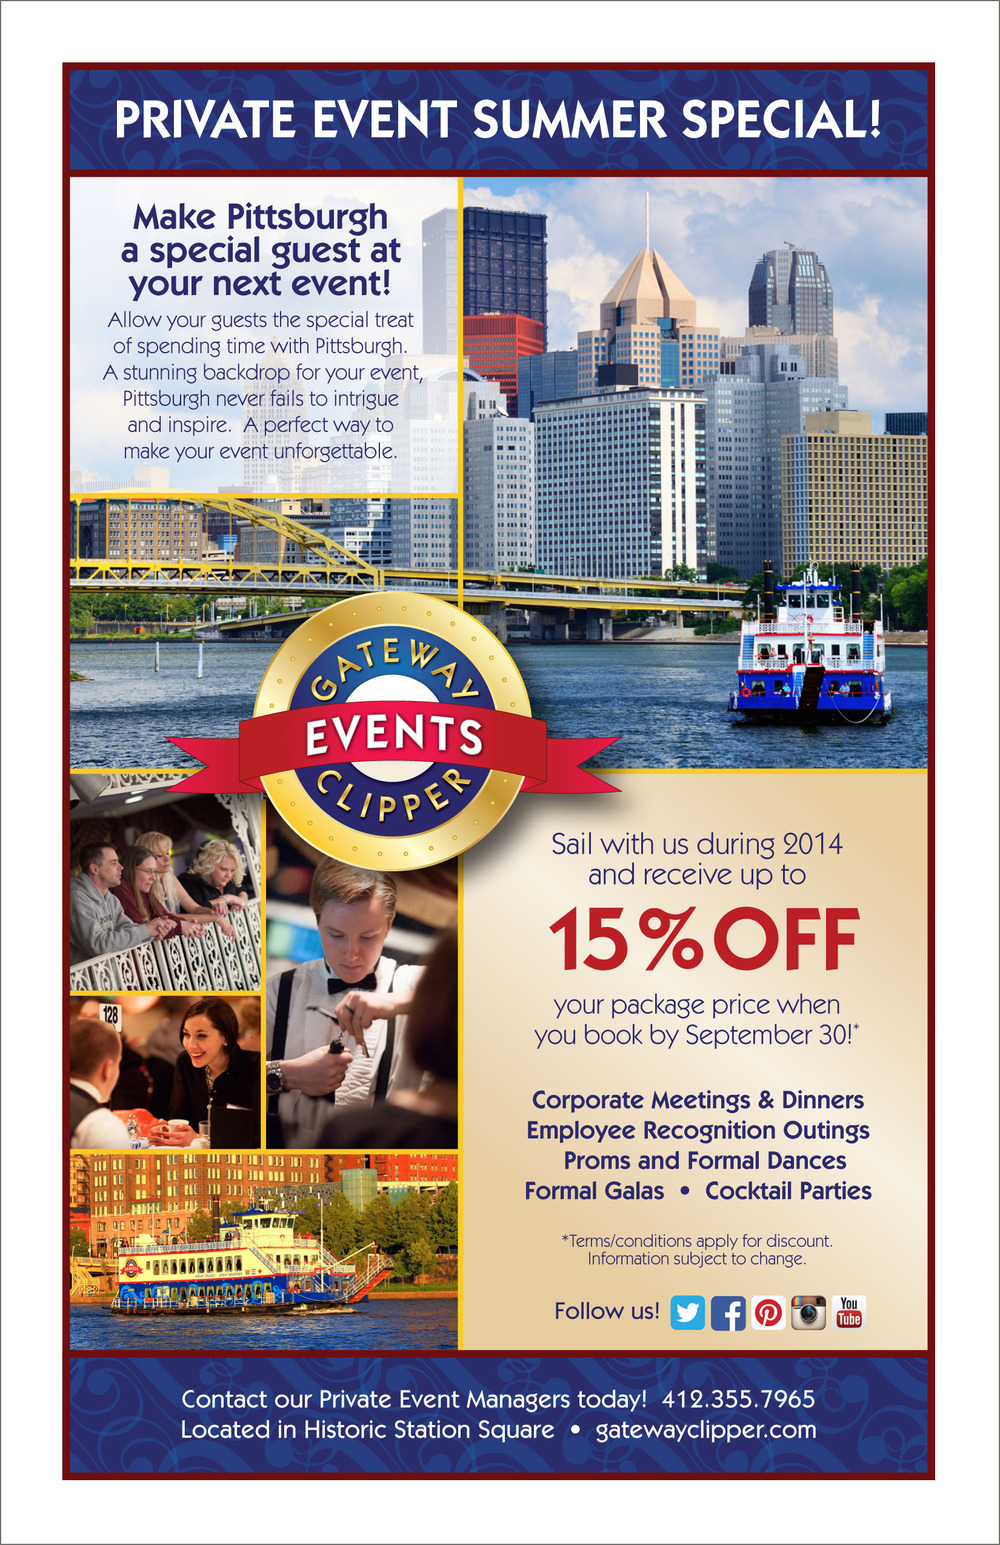 Private Event Special Offer Flyer